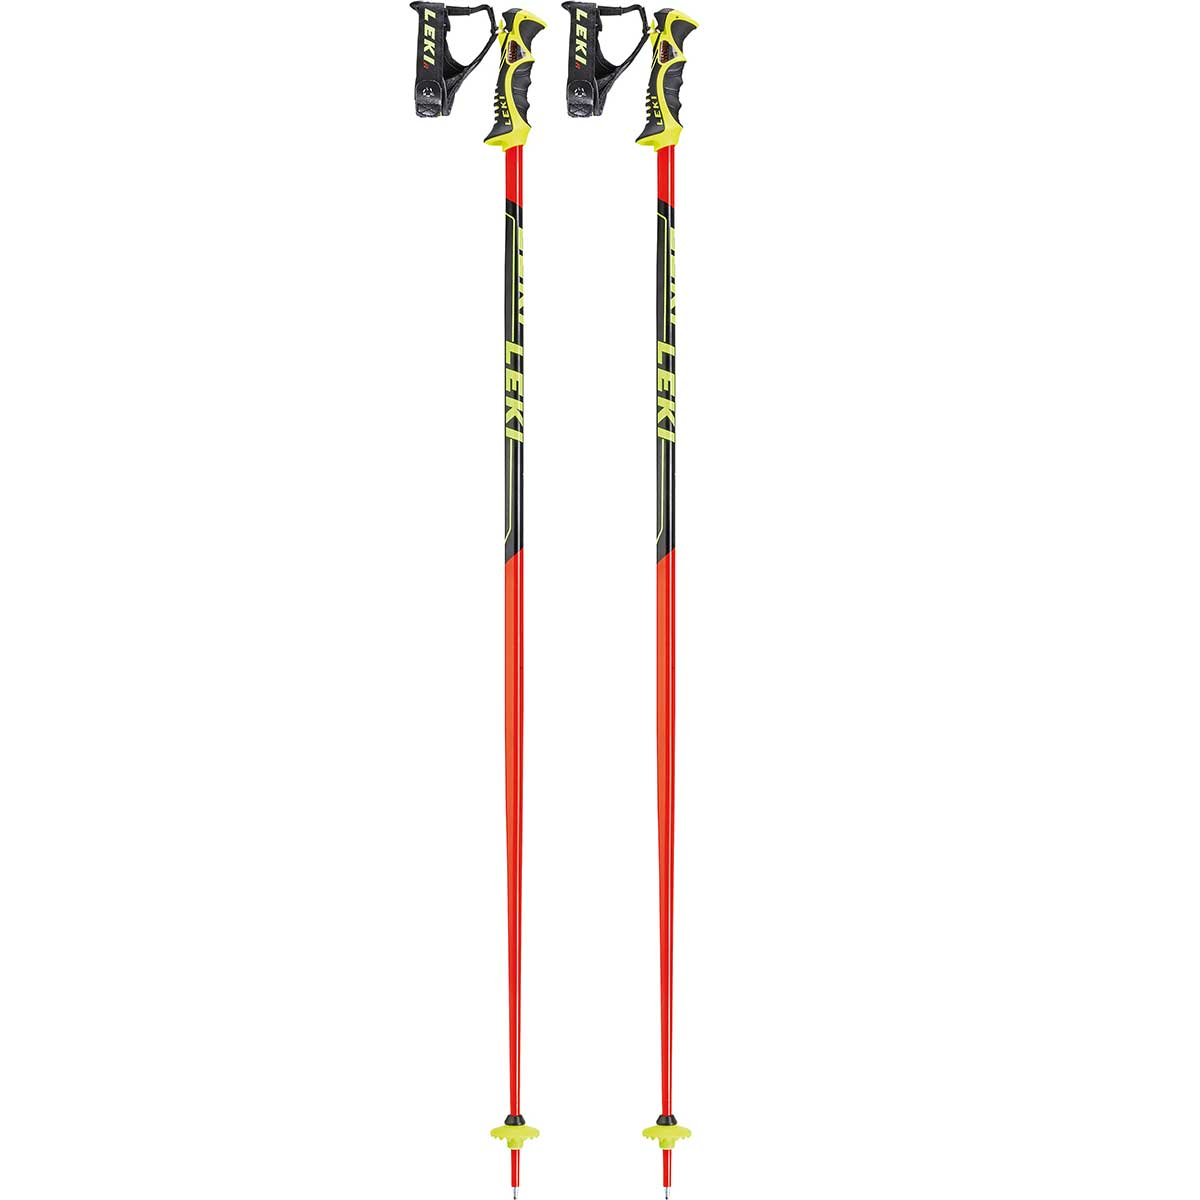 Leki Worldcup Trigger S Race Pole in one color